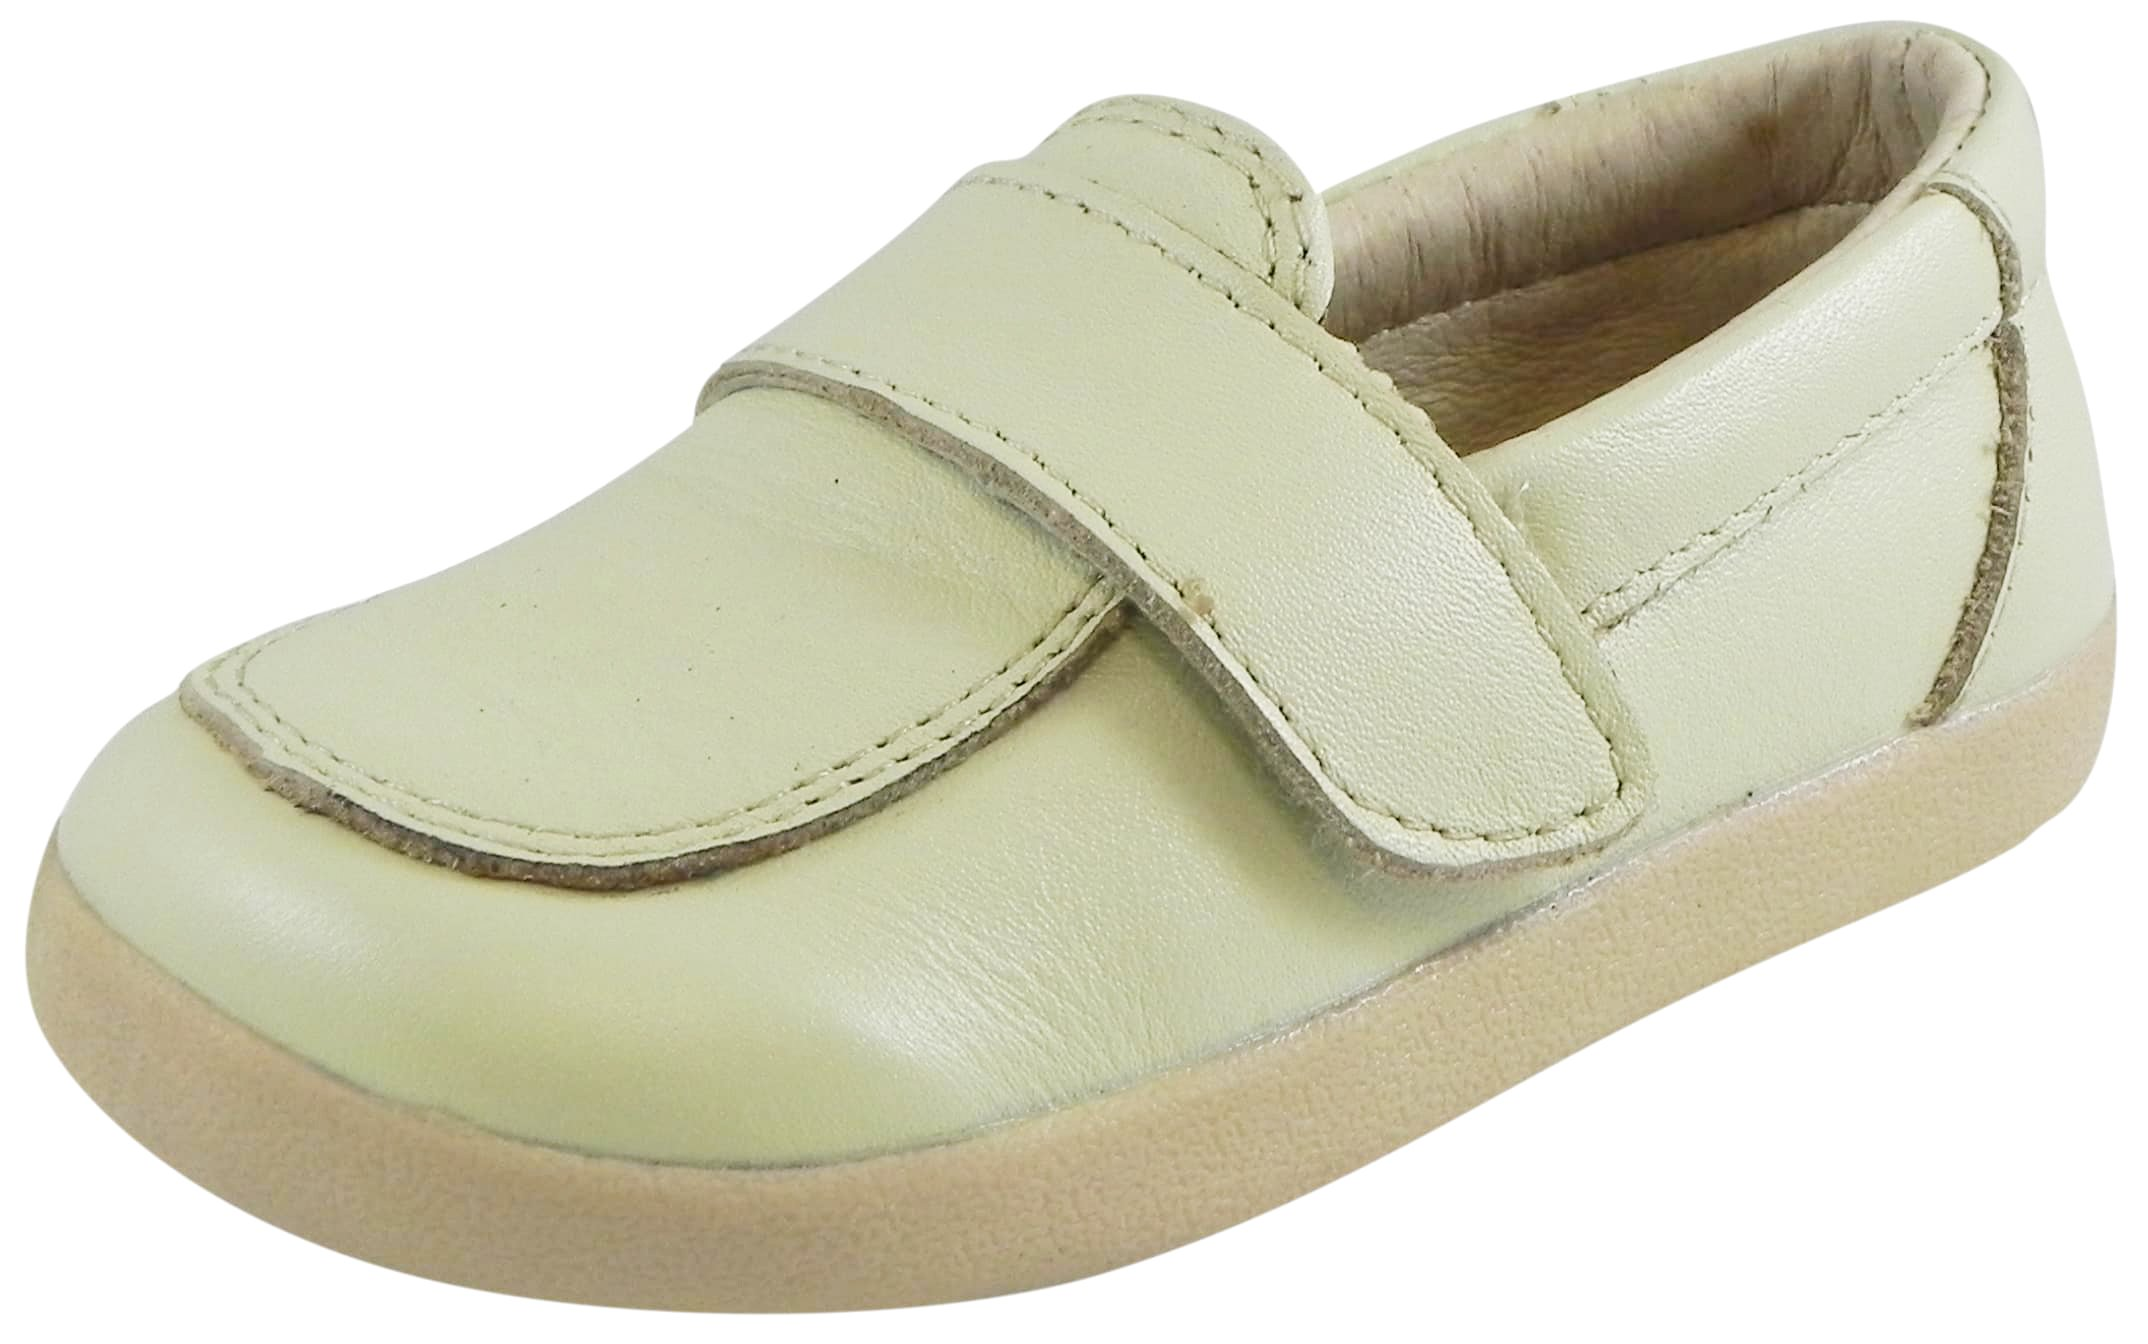 Old Soles Kid's Business Loafer Cream Champagne Leather Slip On Shoe 22 M EU/6 M US Toddler